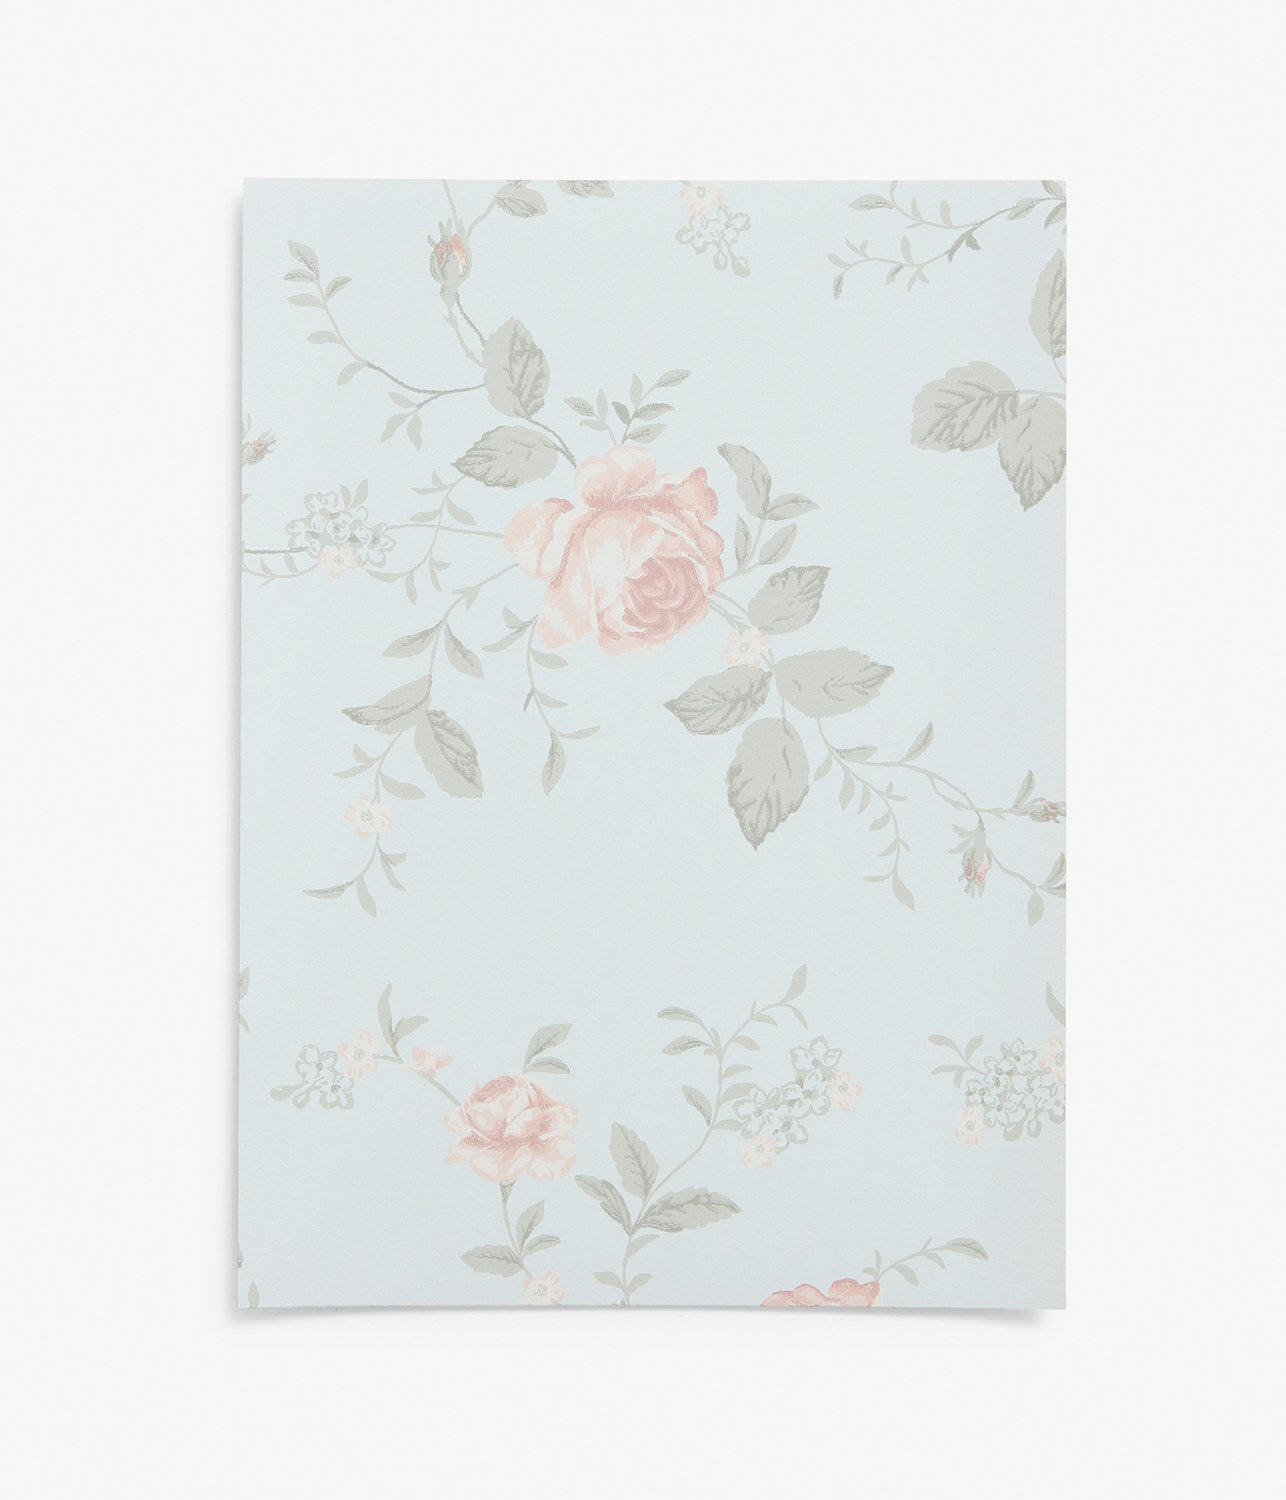 Rose Garden blue wallpaper sample